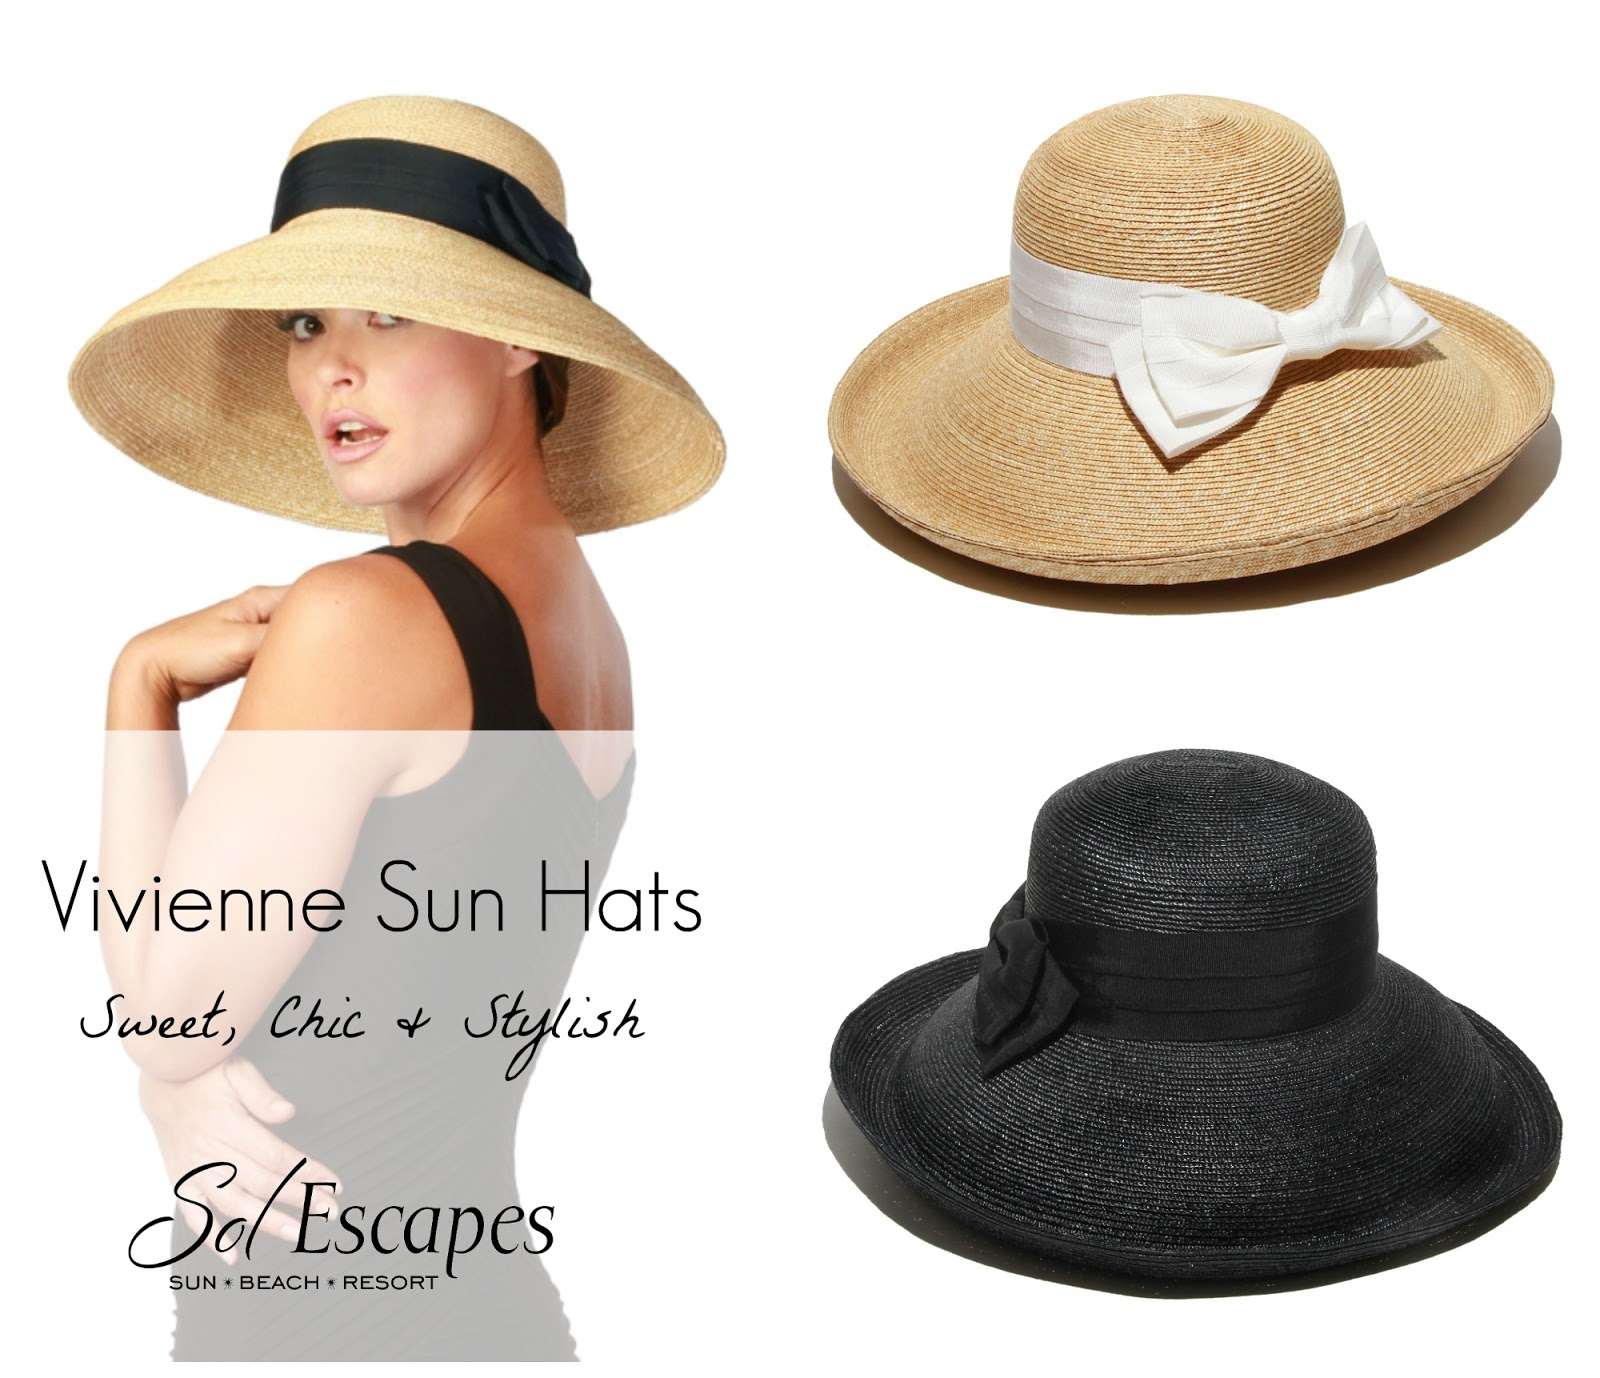 http://www.solescapes.com/Vivienne-Straw-Sun-Hats-As-Seen-in-Family-Circle-s/2215.htm